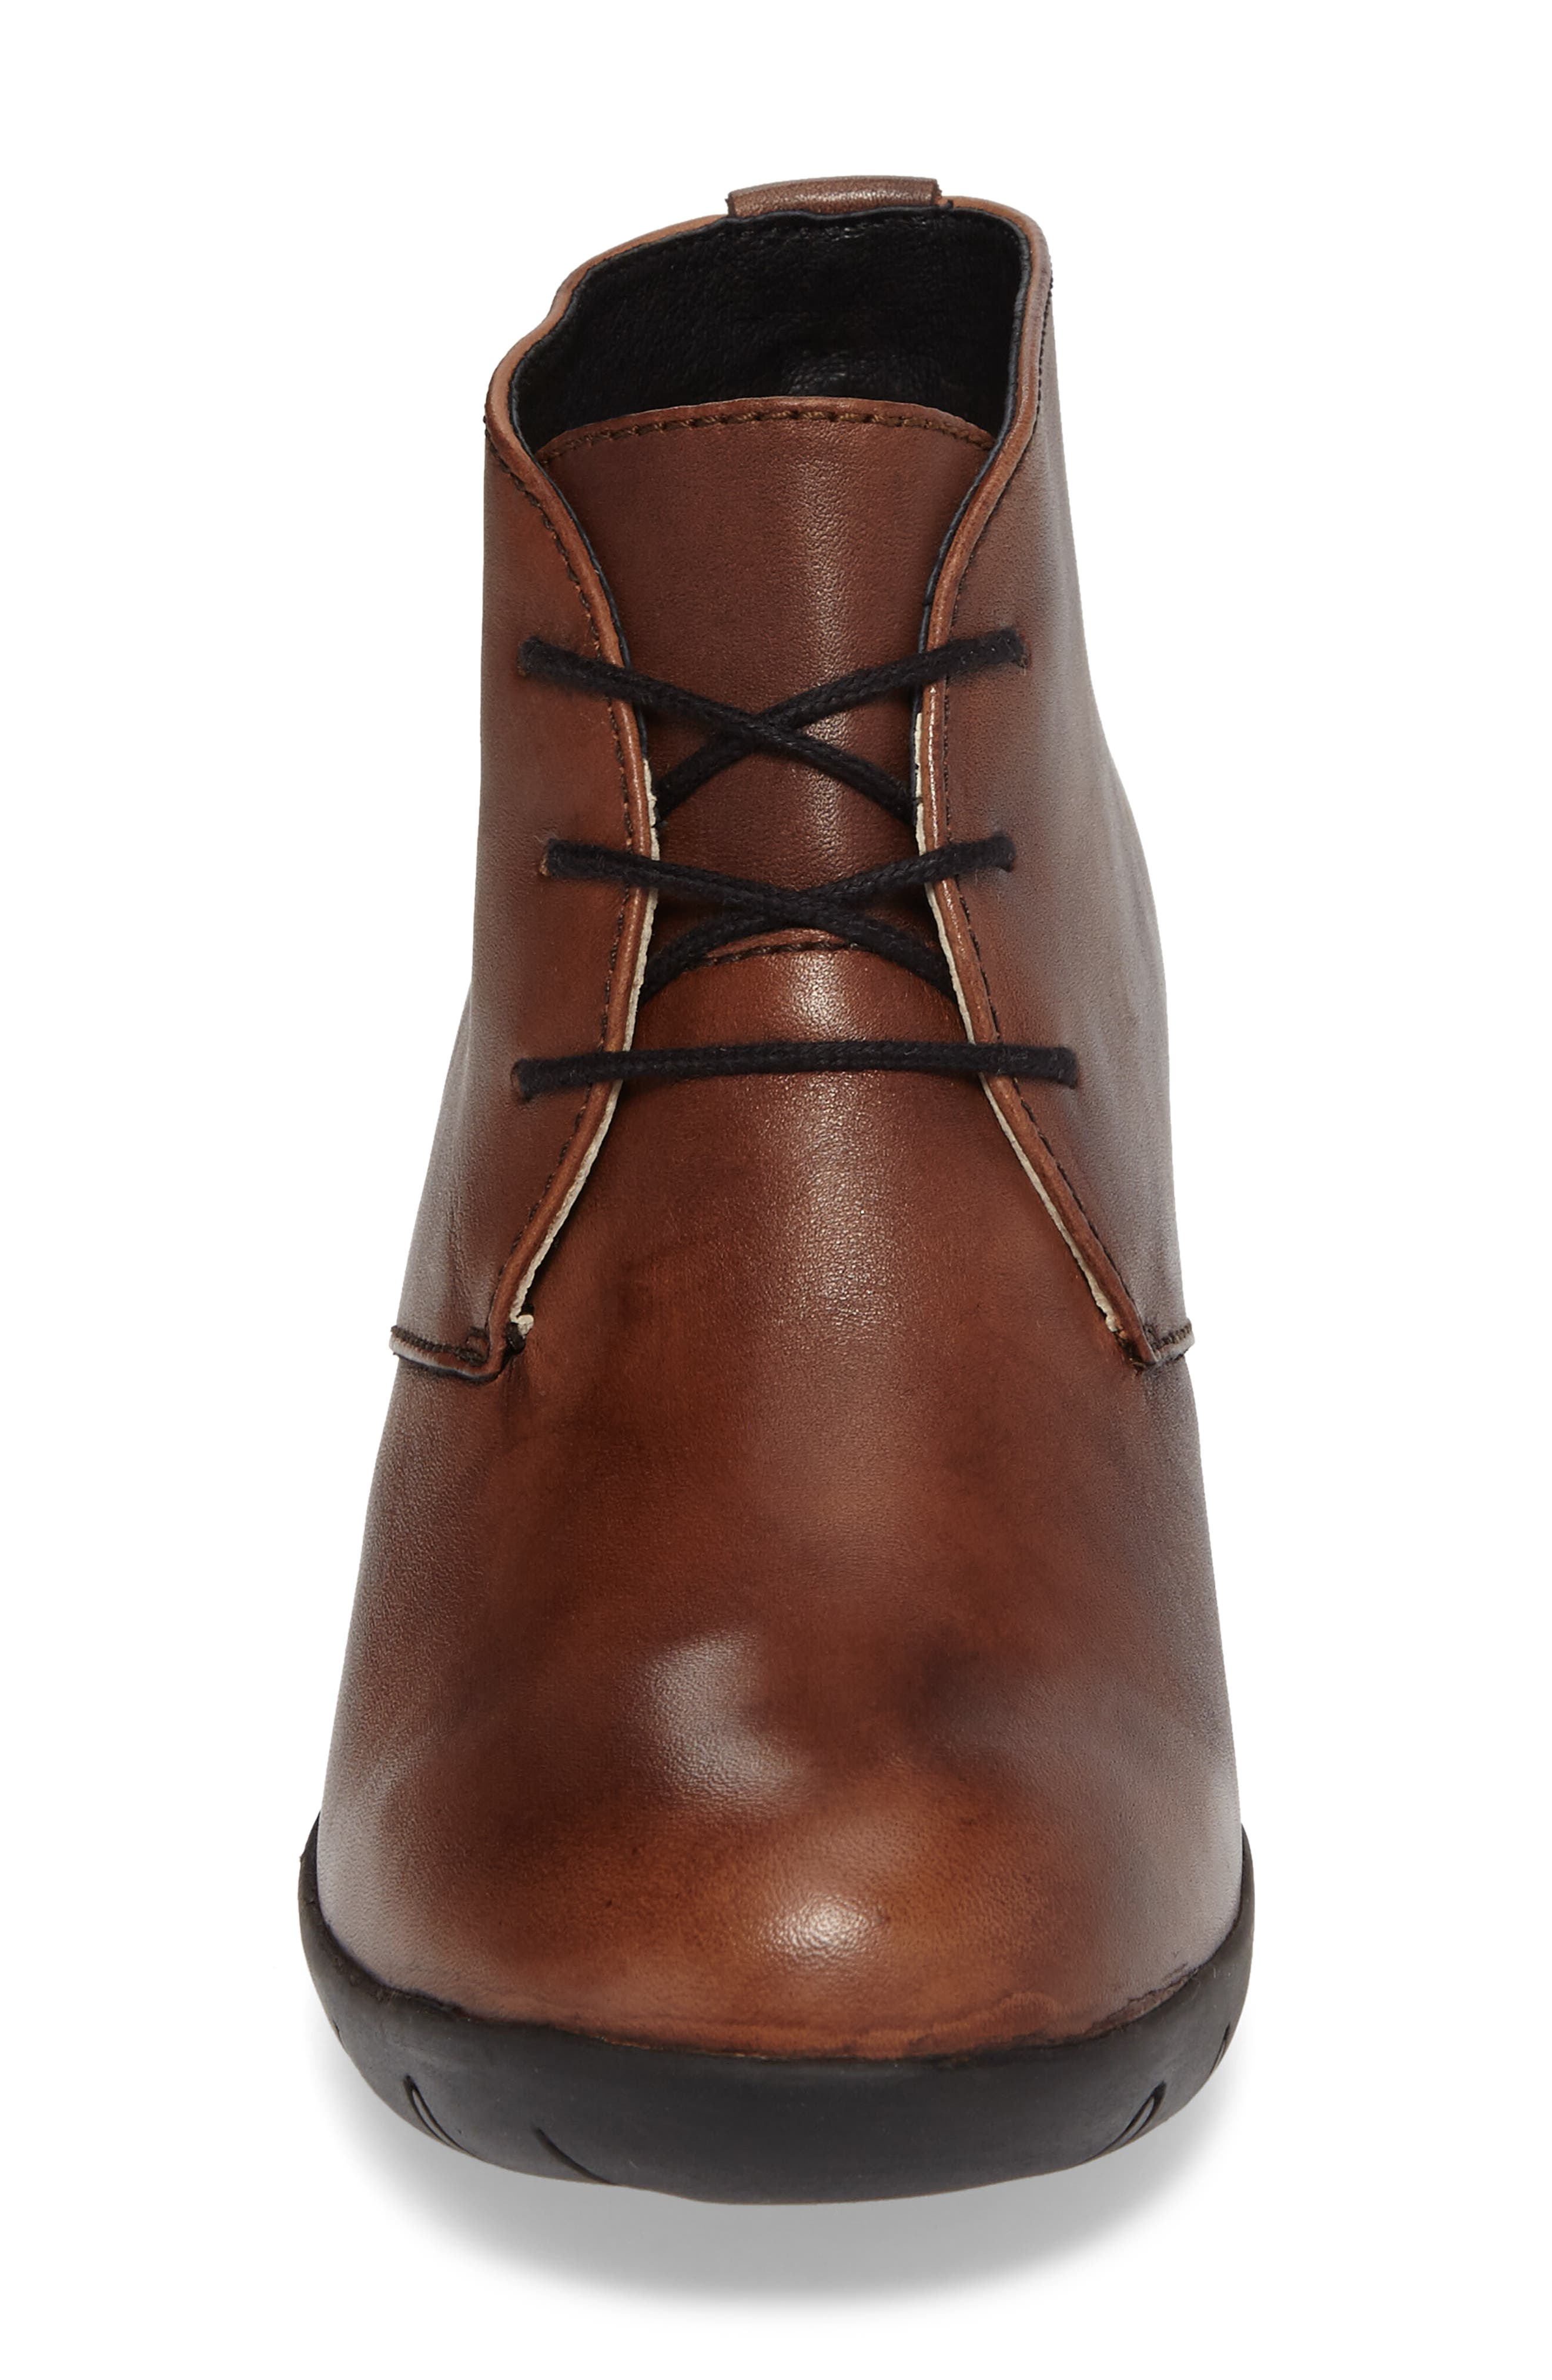 Bighorn Bootie,                             Alternate thumbnail 4, color,                             COGNAC LEATHER